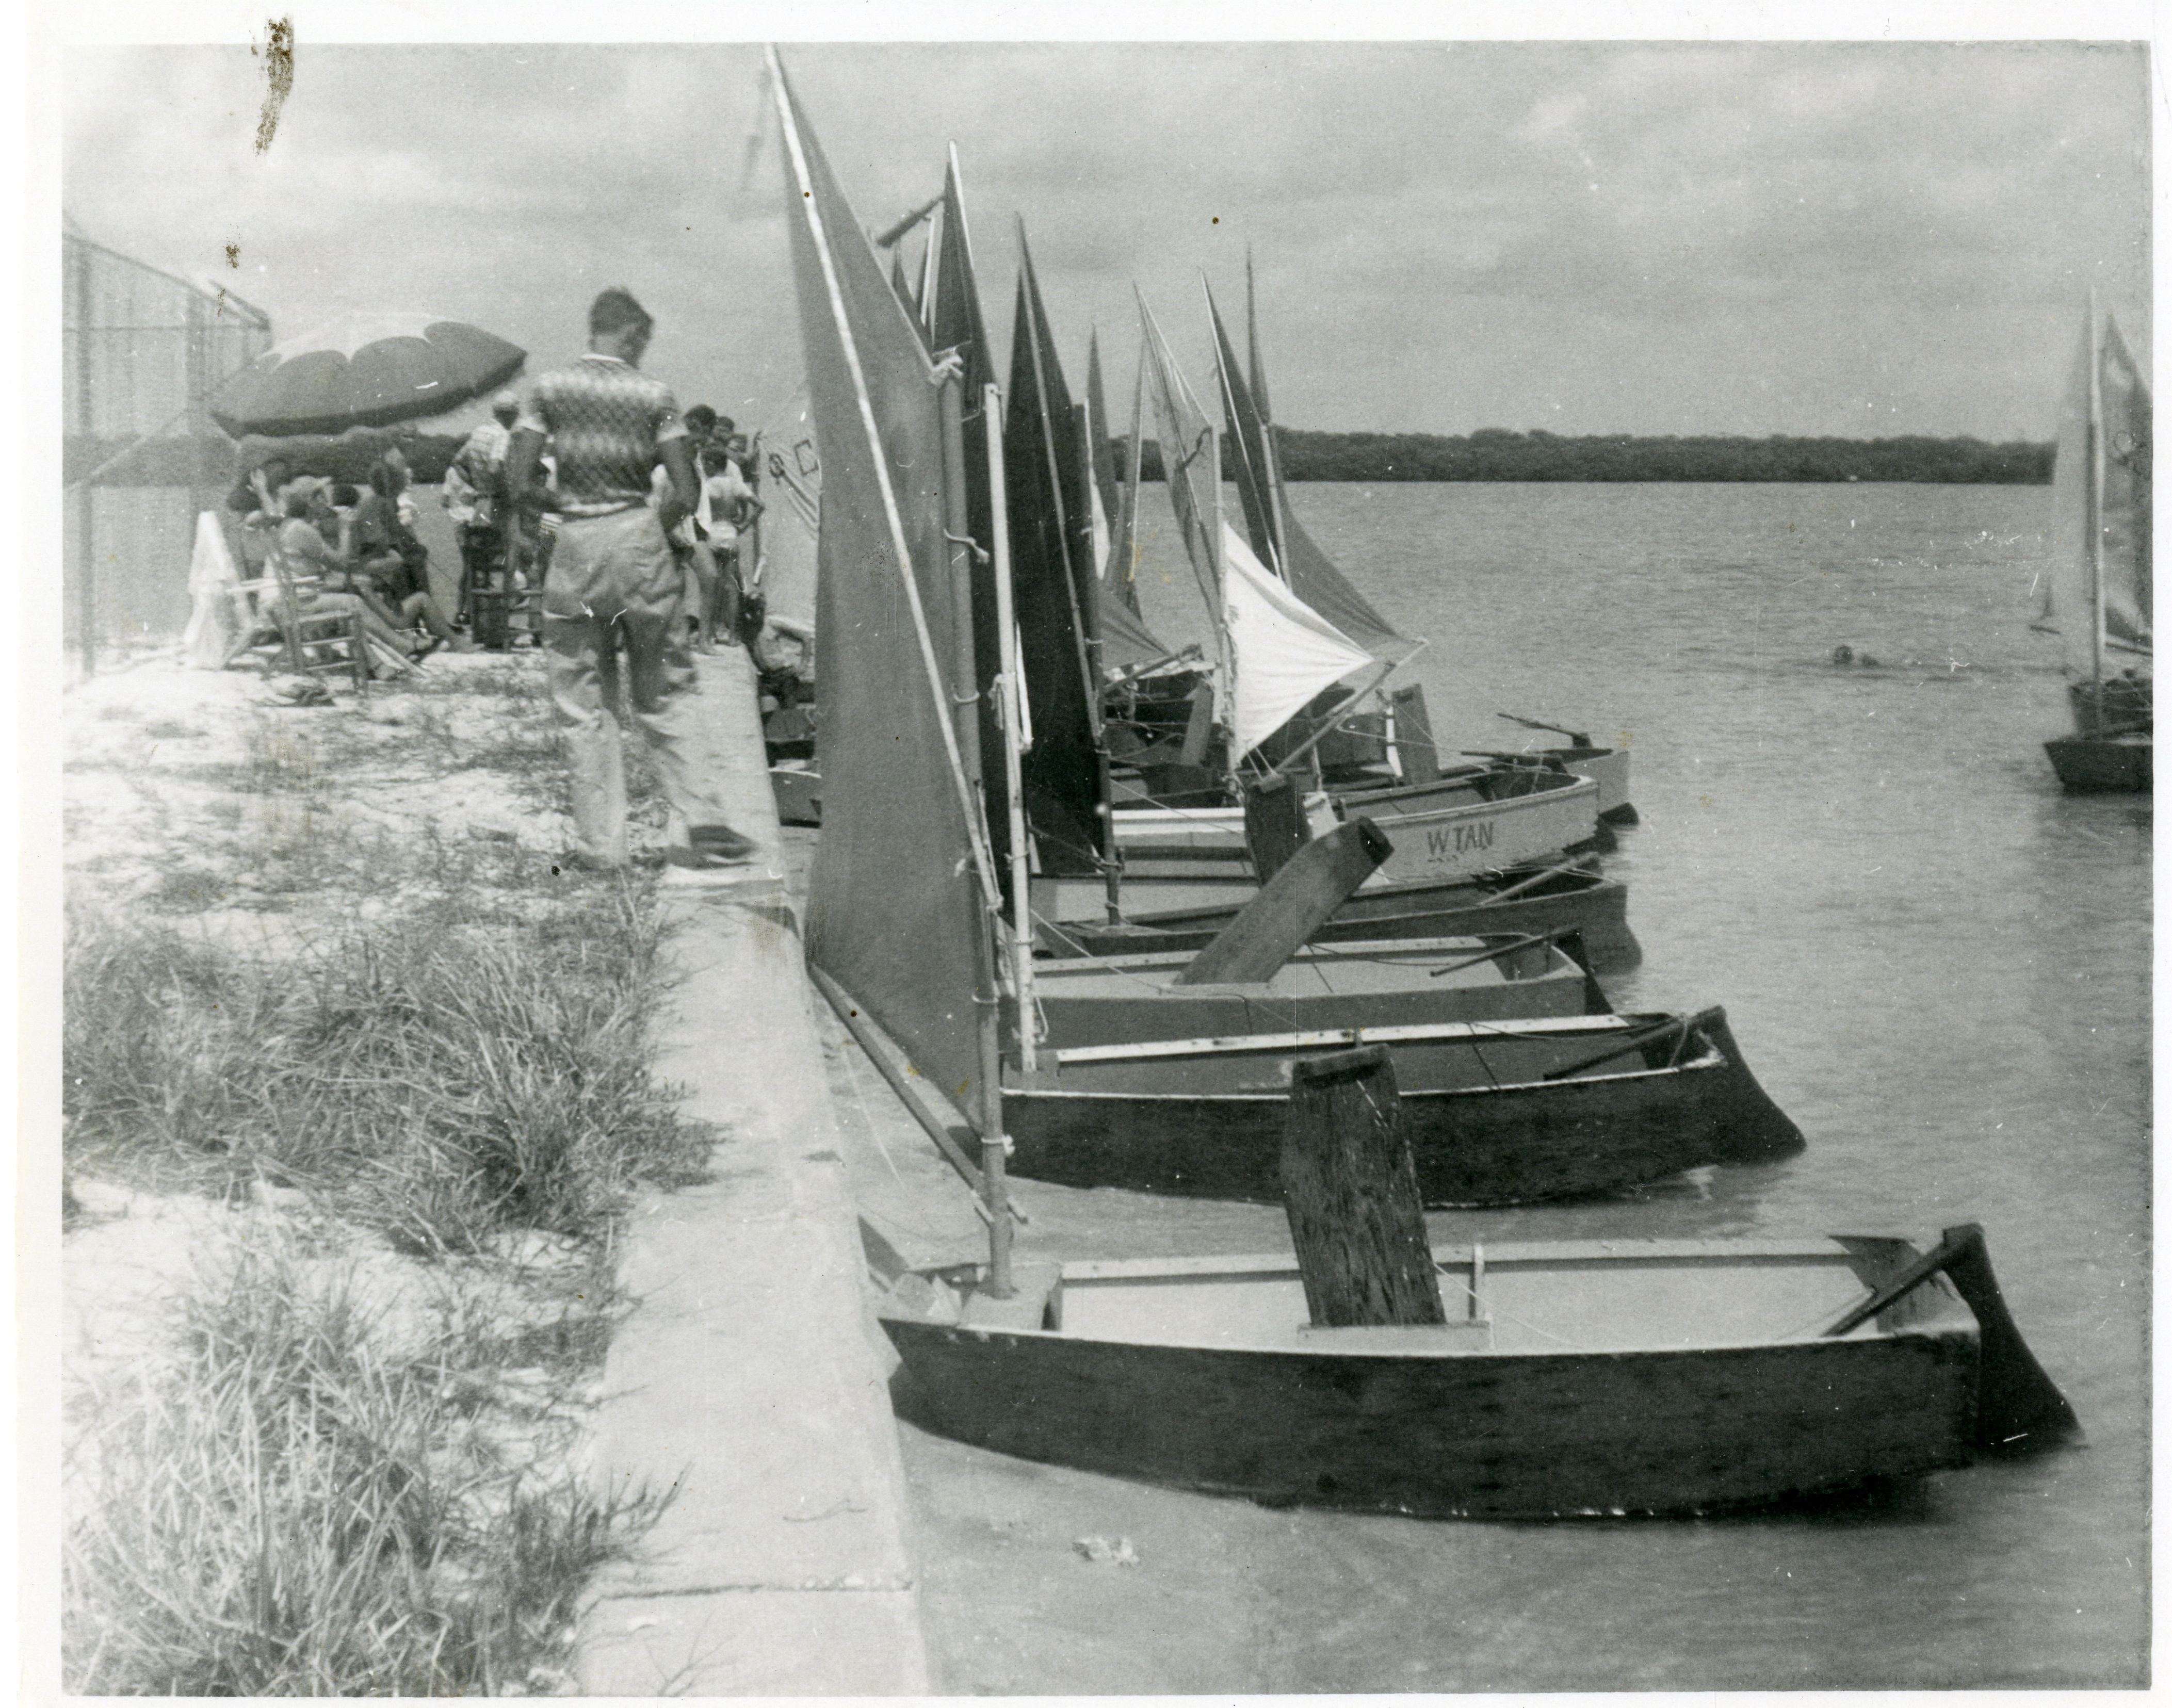 Docked prams in Clearwater, Florida, circa 1948.